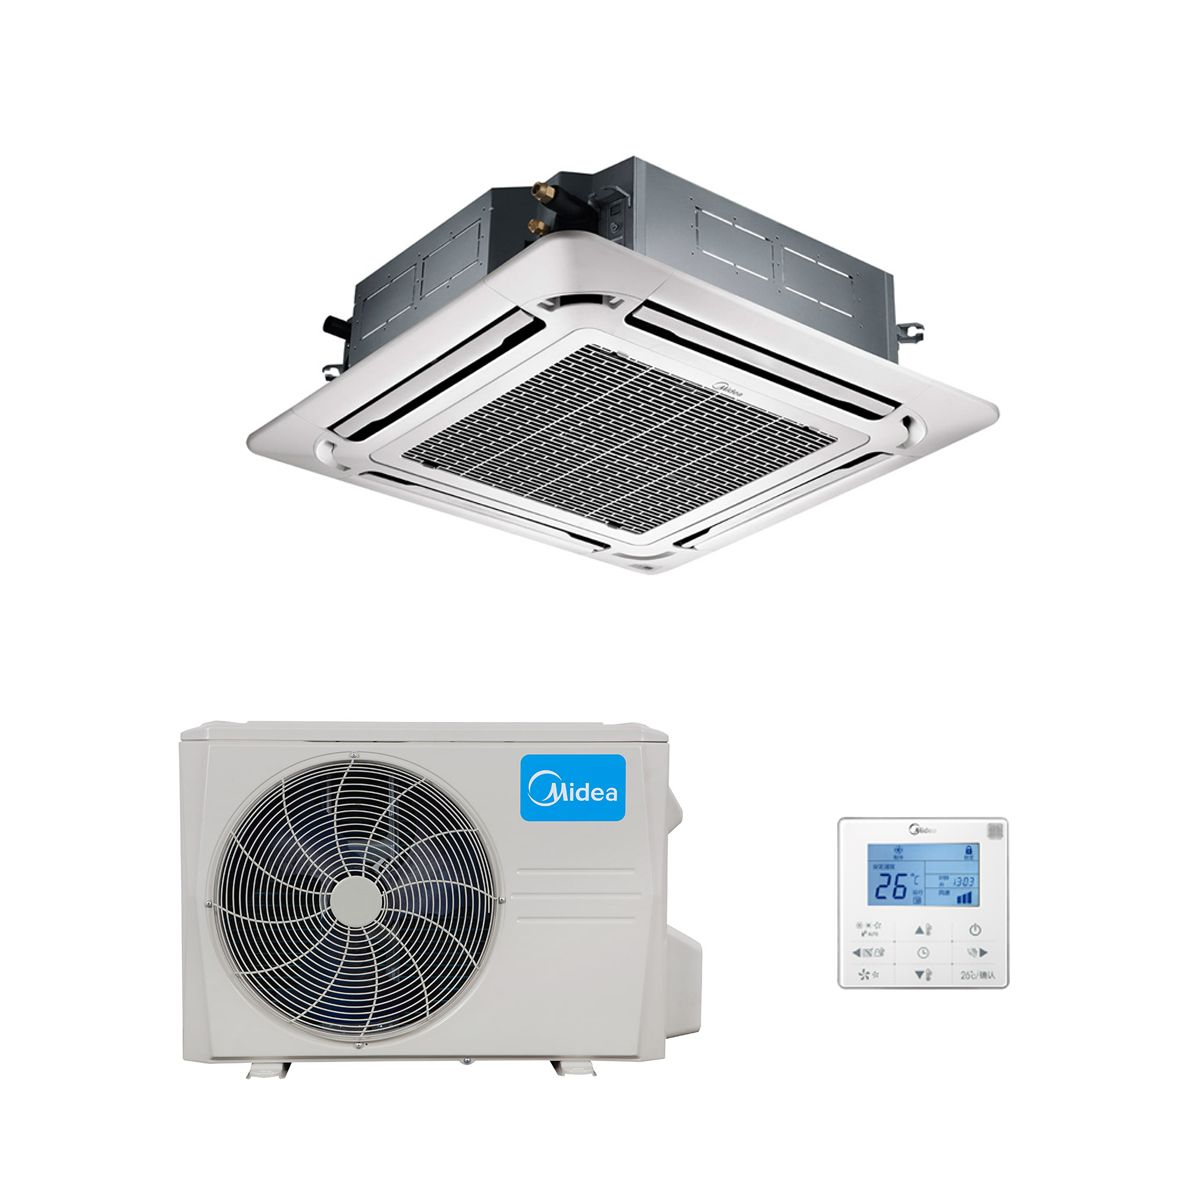 Midea Air Conditioning Mca3u 18hrfn1 Compact Round Flow